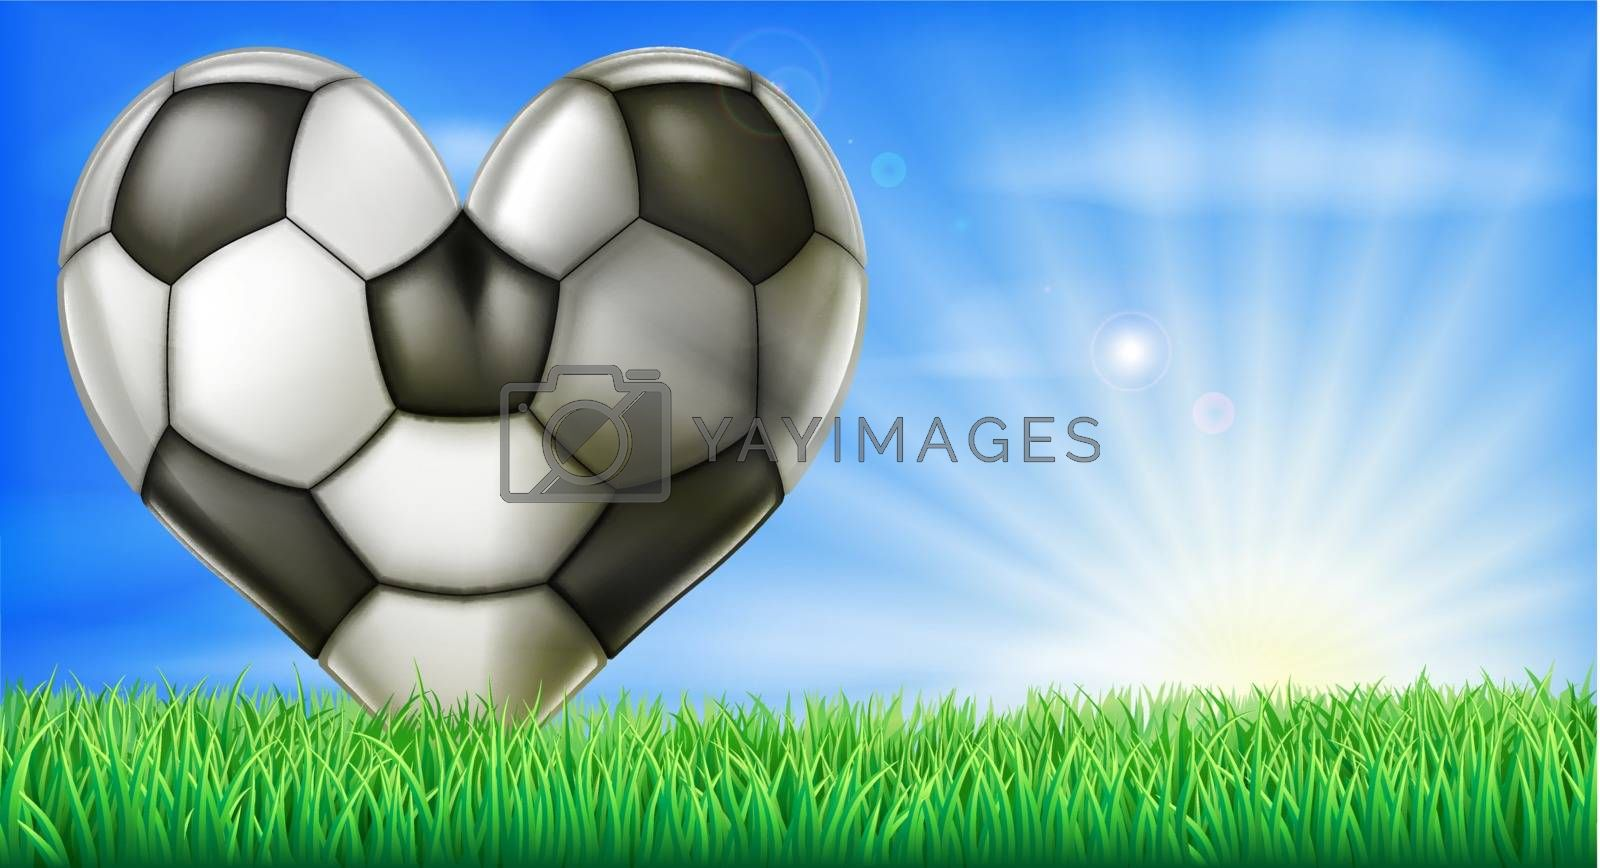 A heart shaped soccer football in a green grass field pitch. Conceptual illustration for a love of soccer